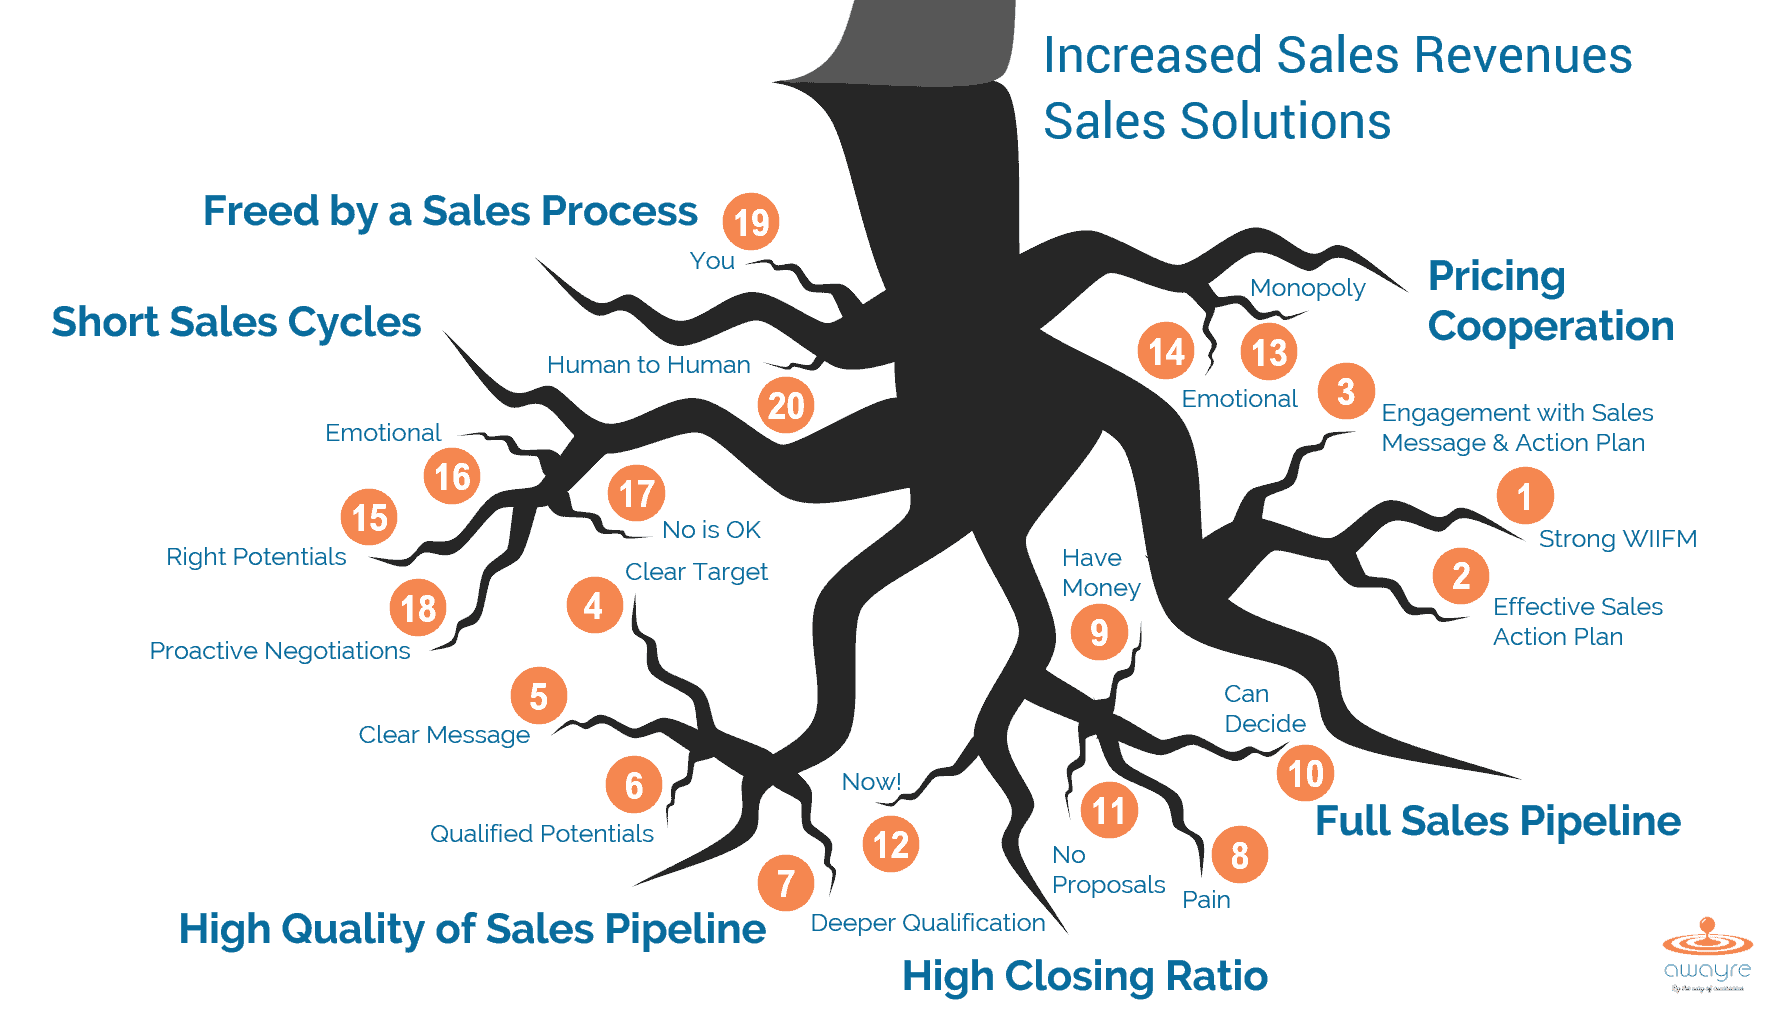 6 Sales Solutions and Their Contributing Strategies